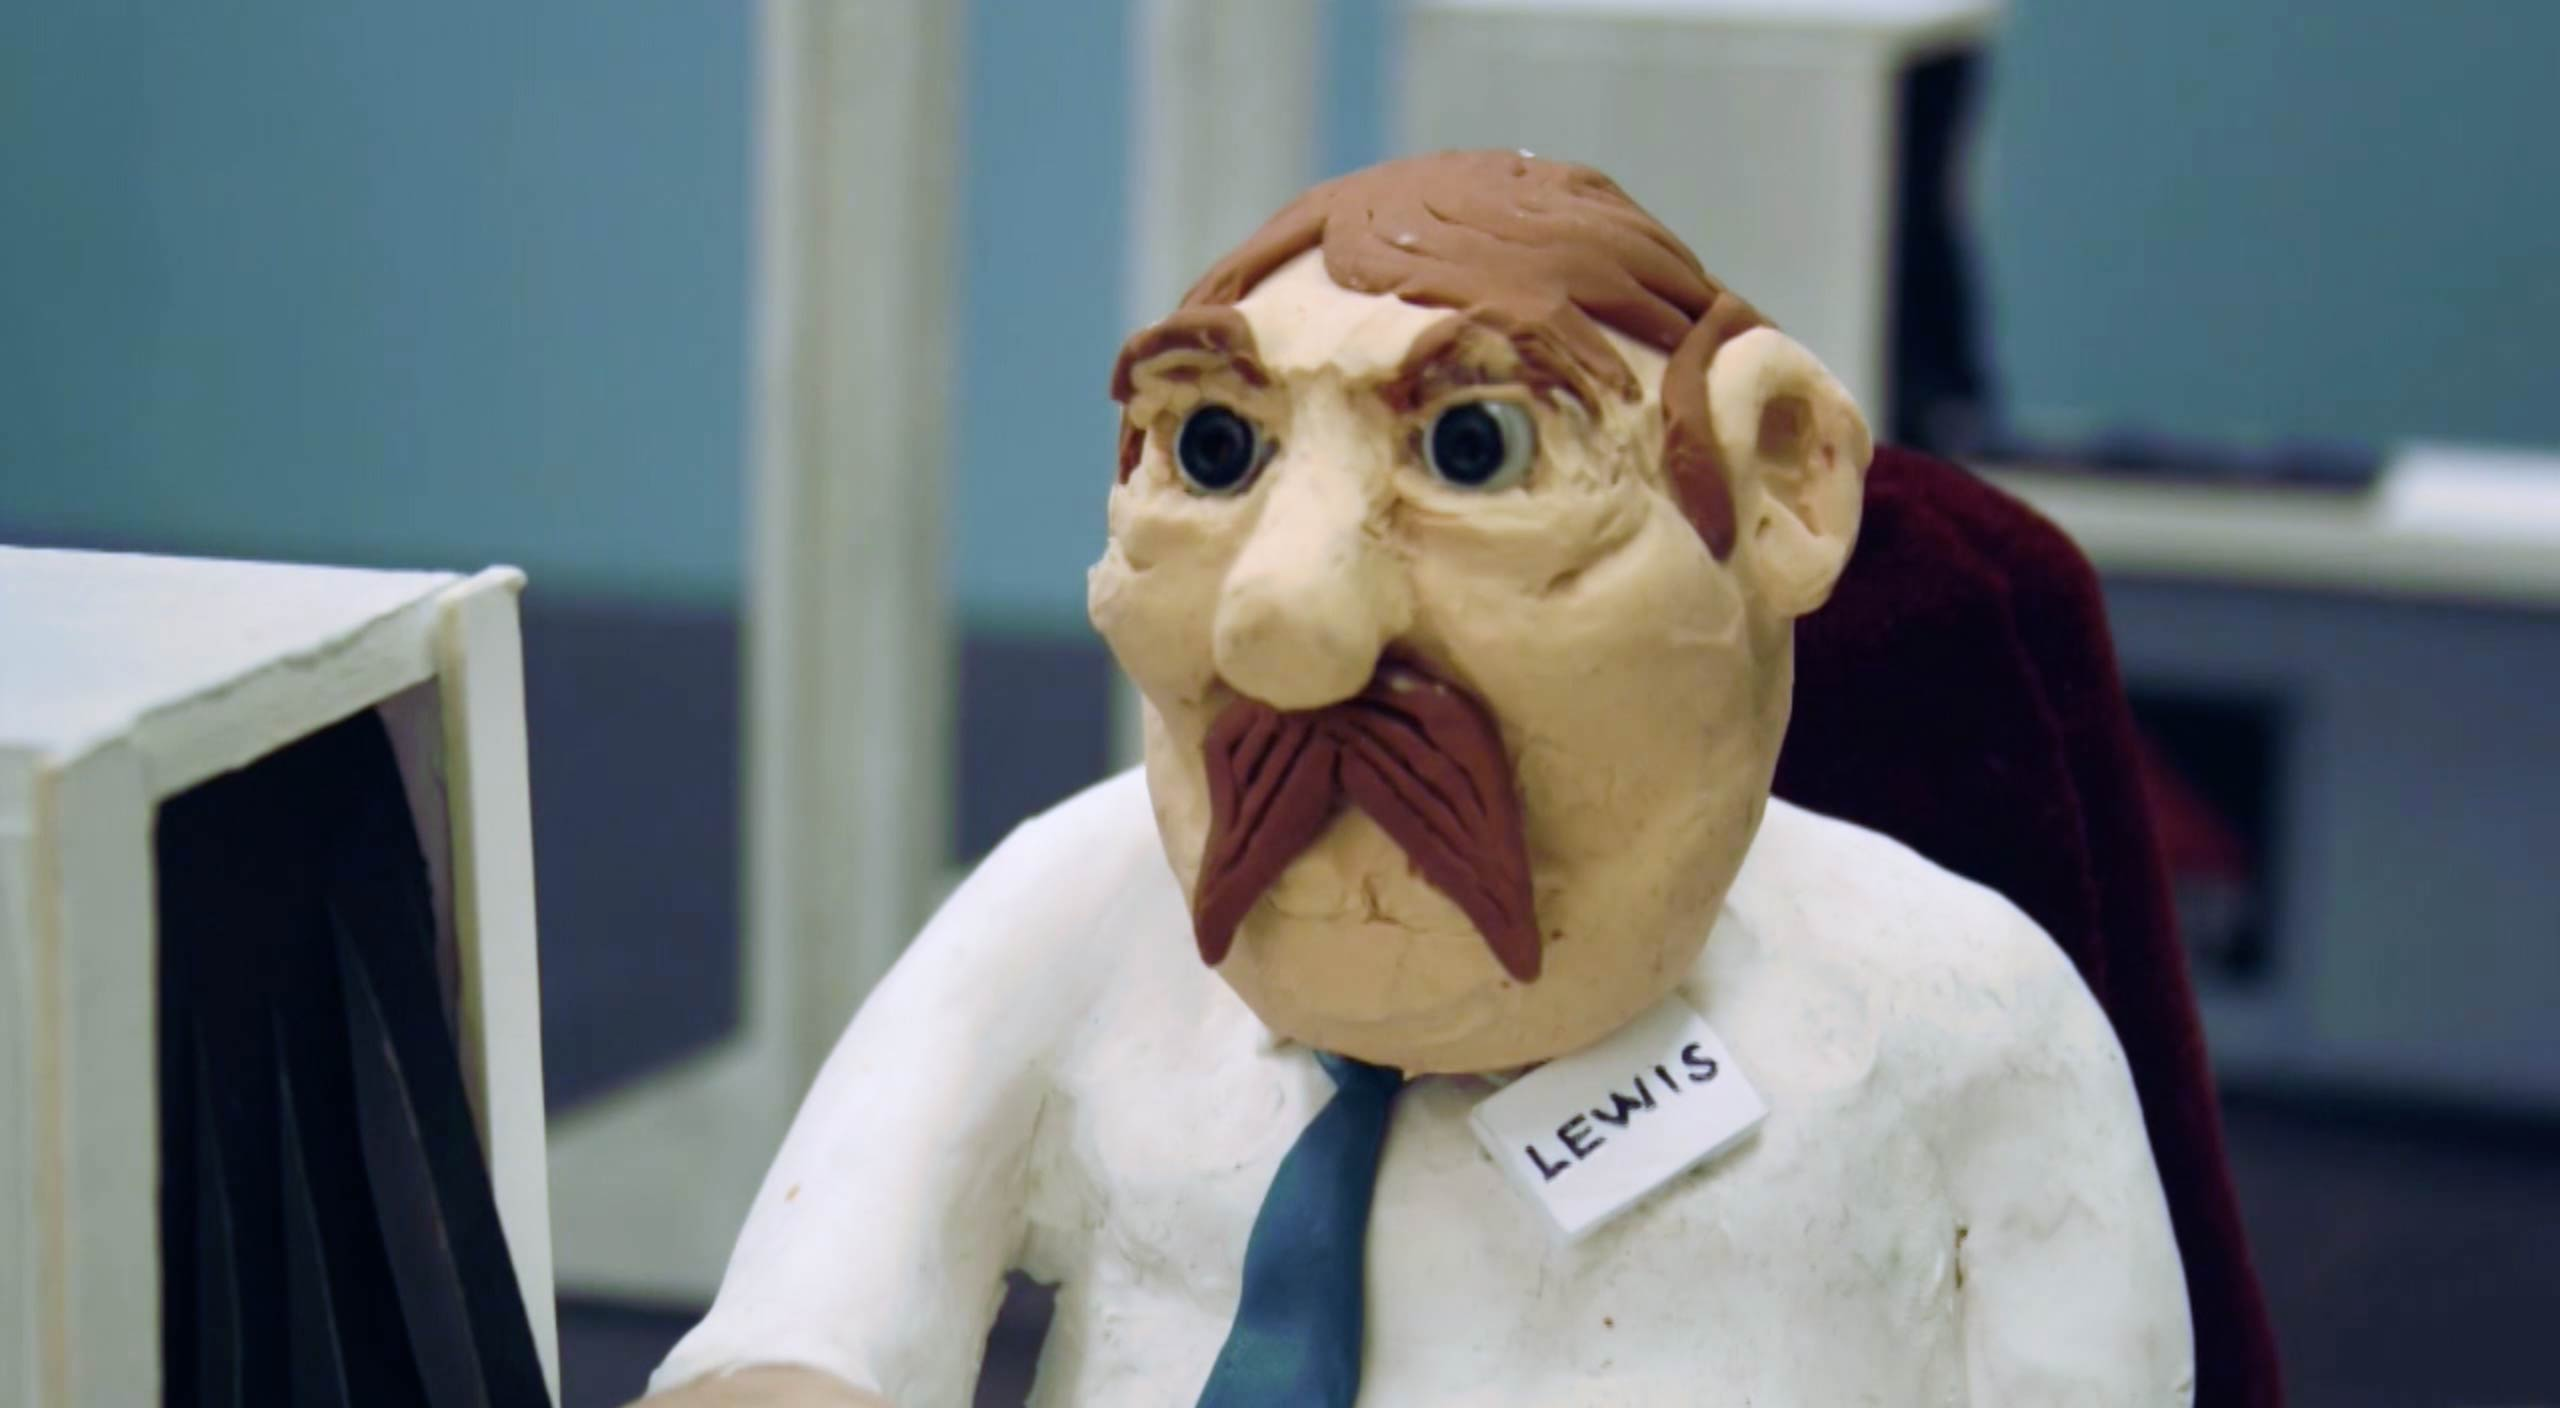 Still from Stop-motion animation